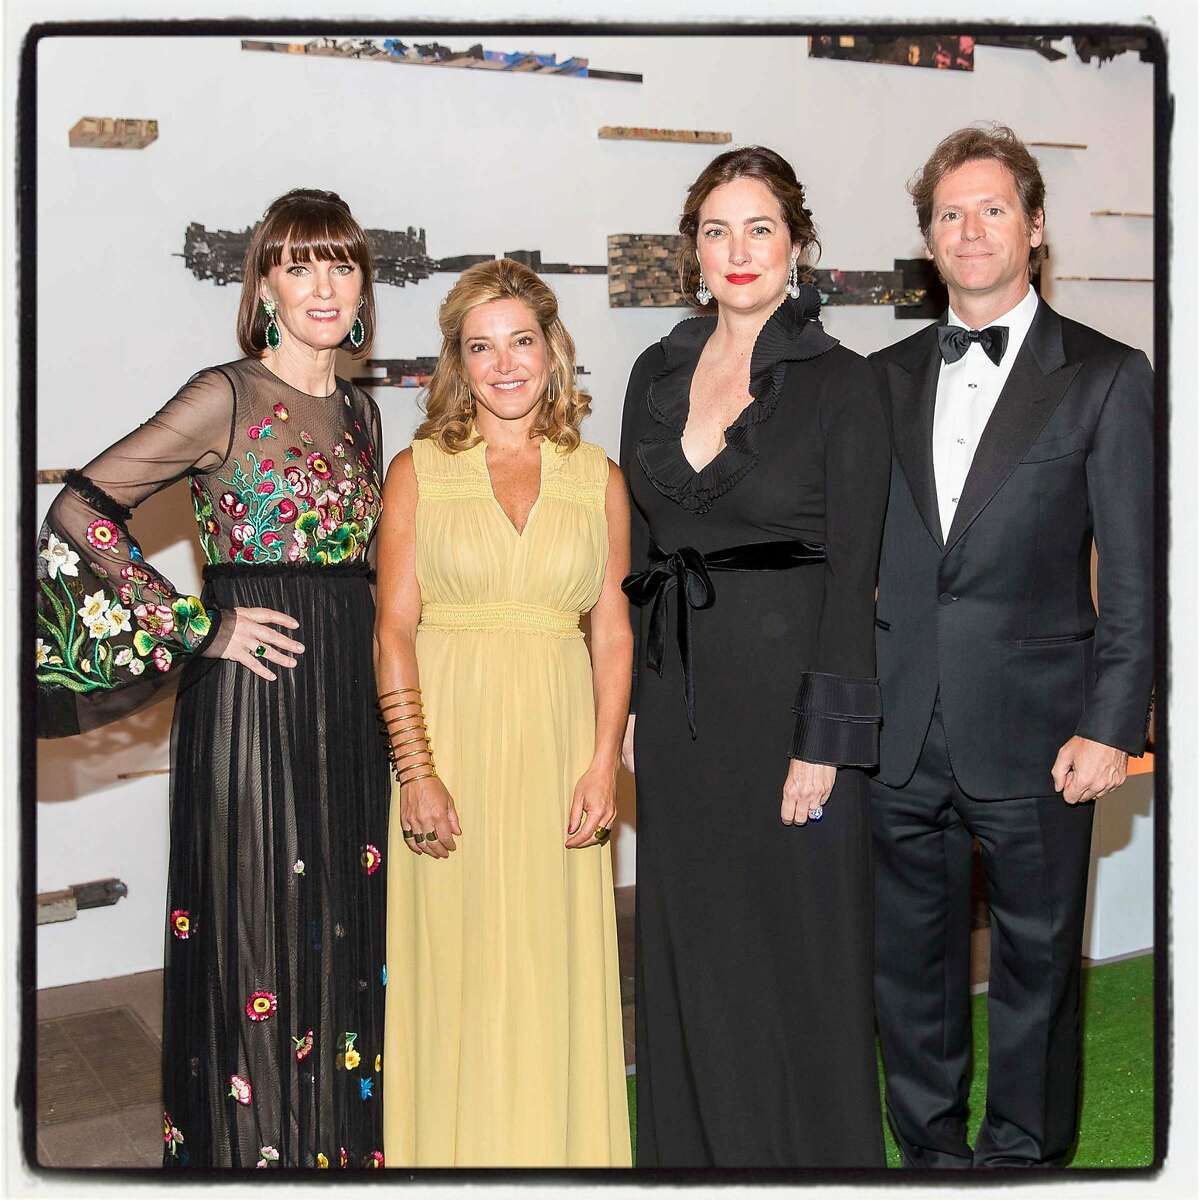 Fine Arts Museums' Spring Gala co-chairs (from left) Allison Speer, Kathryn Lasater and Alexis and Trevor Traina at the de Young Museum. May 20, 2017.